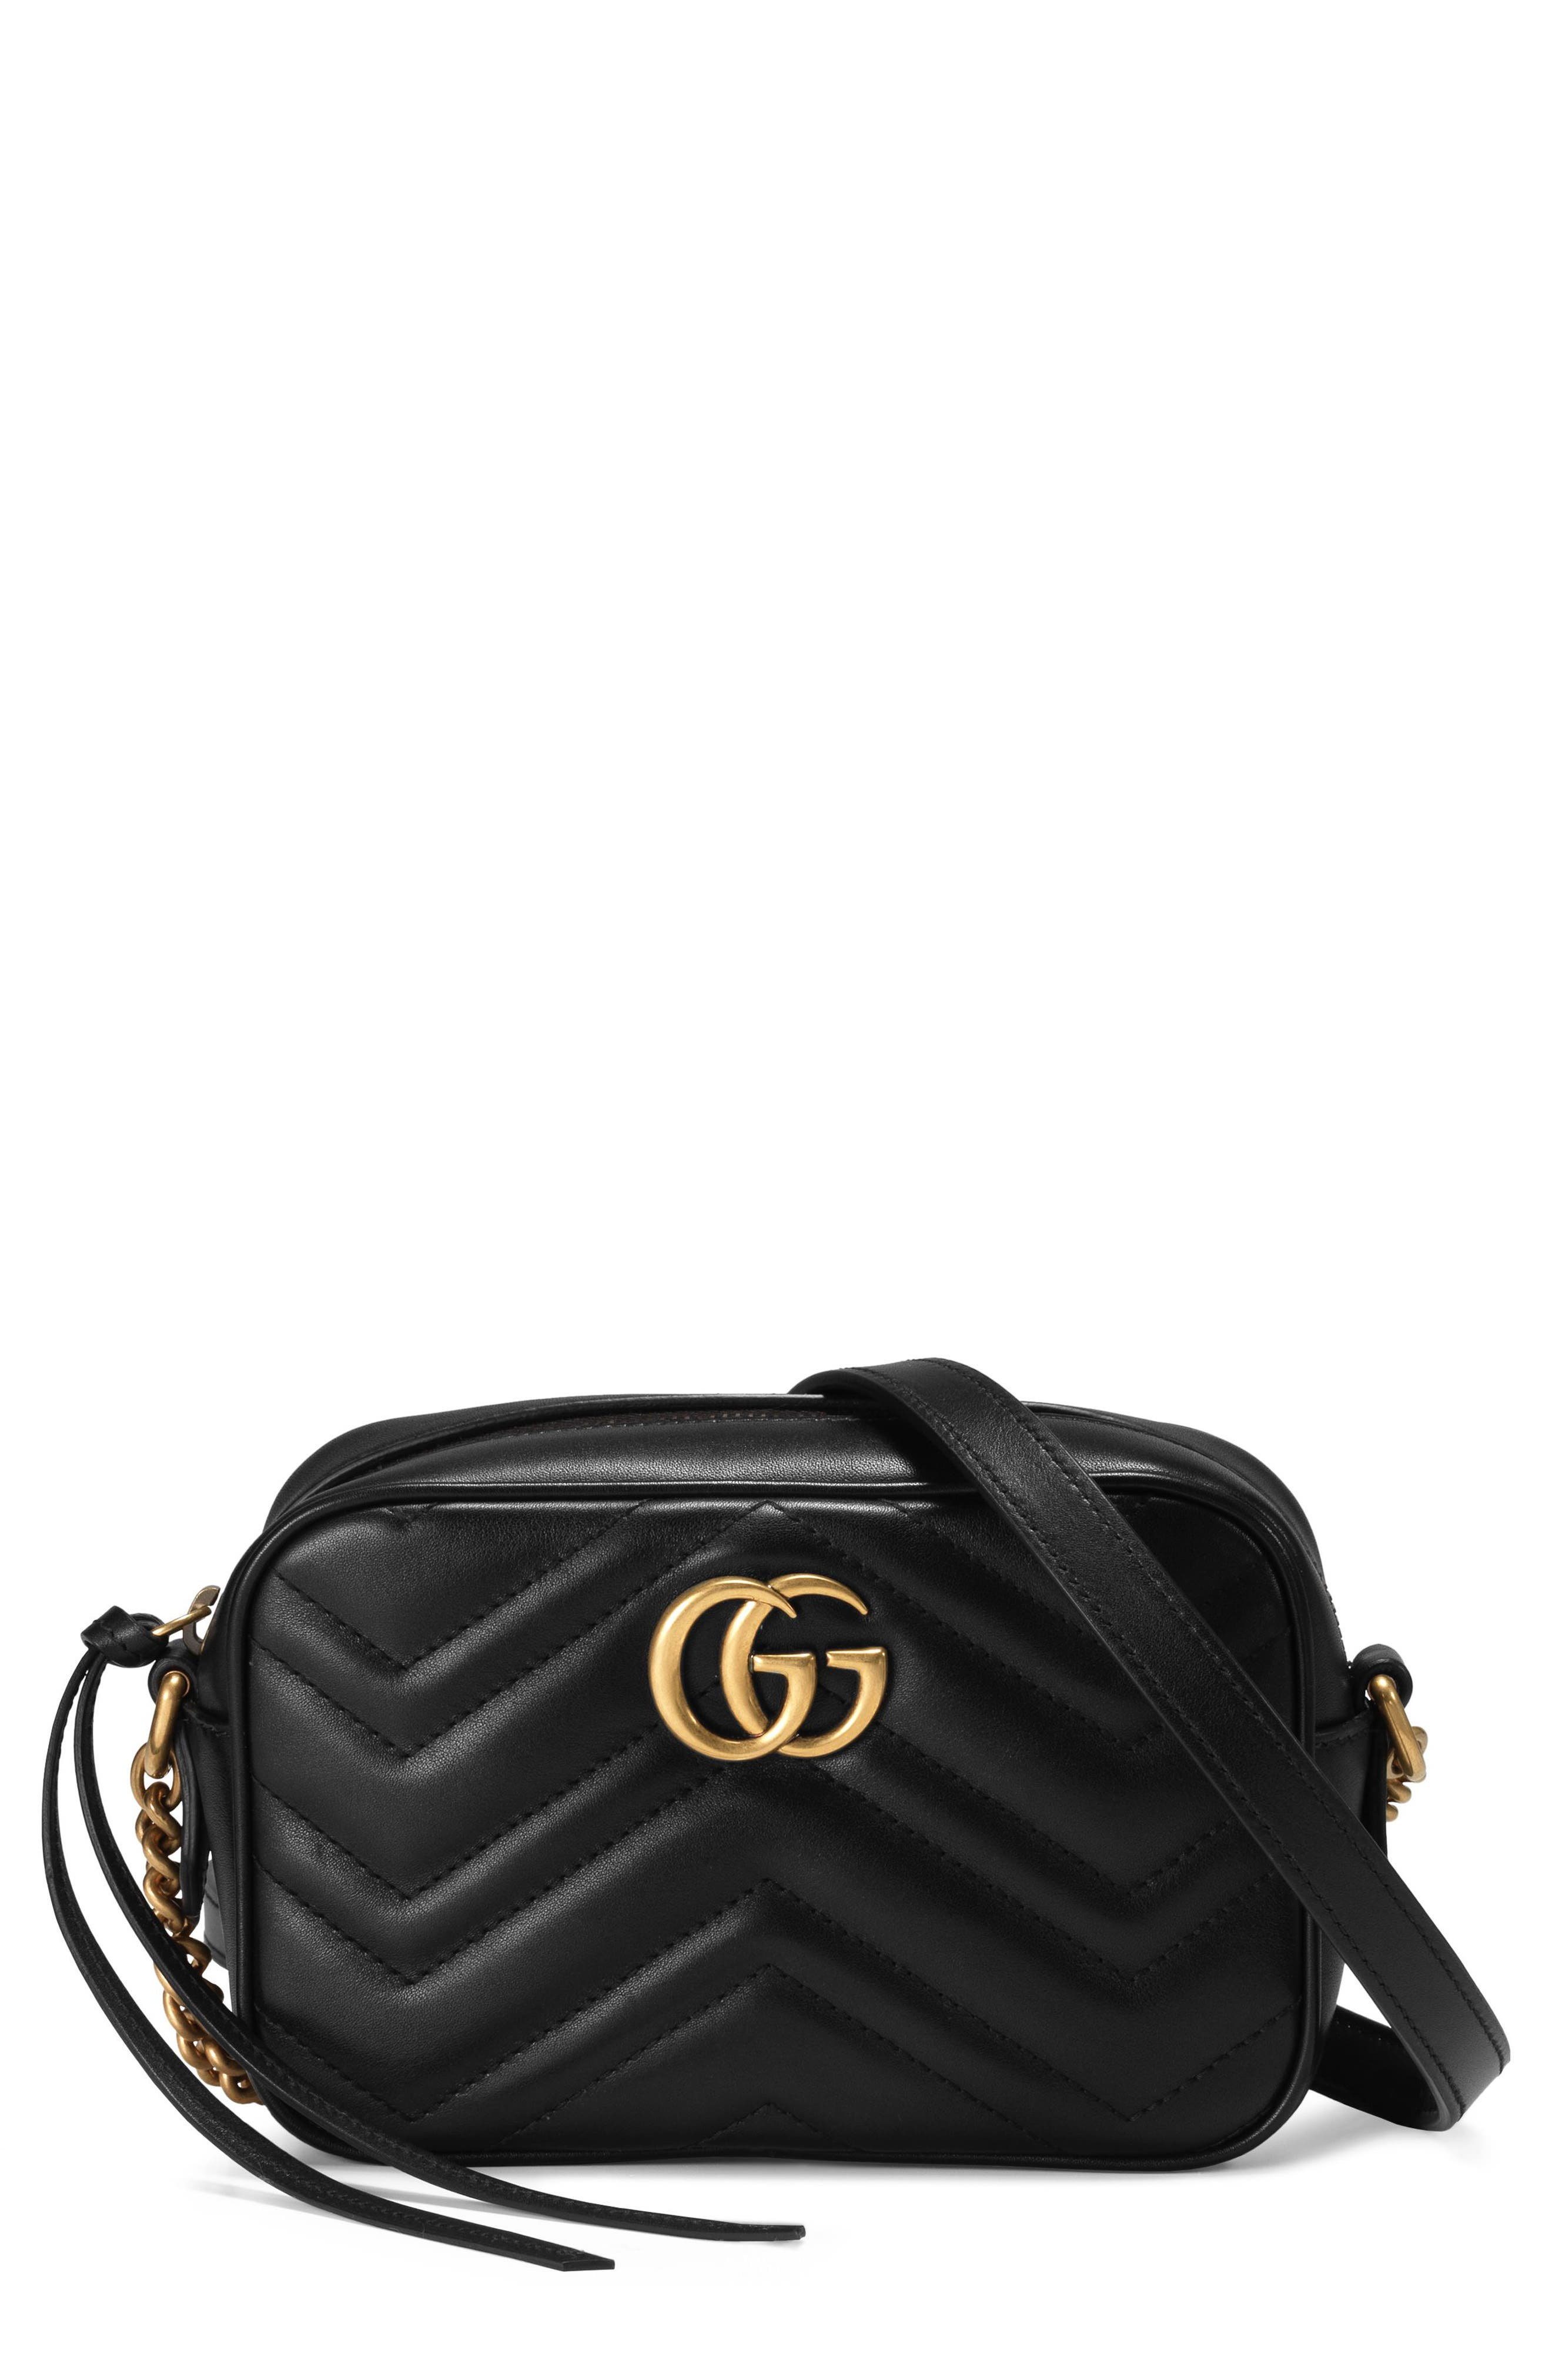 gucci factory outlet online usa